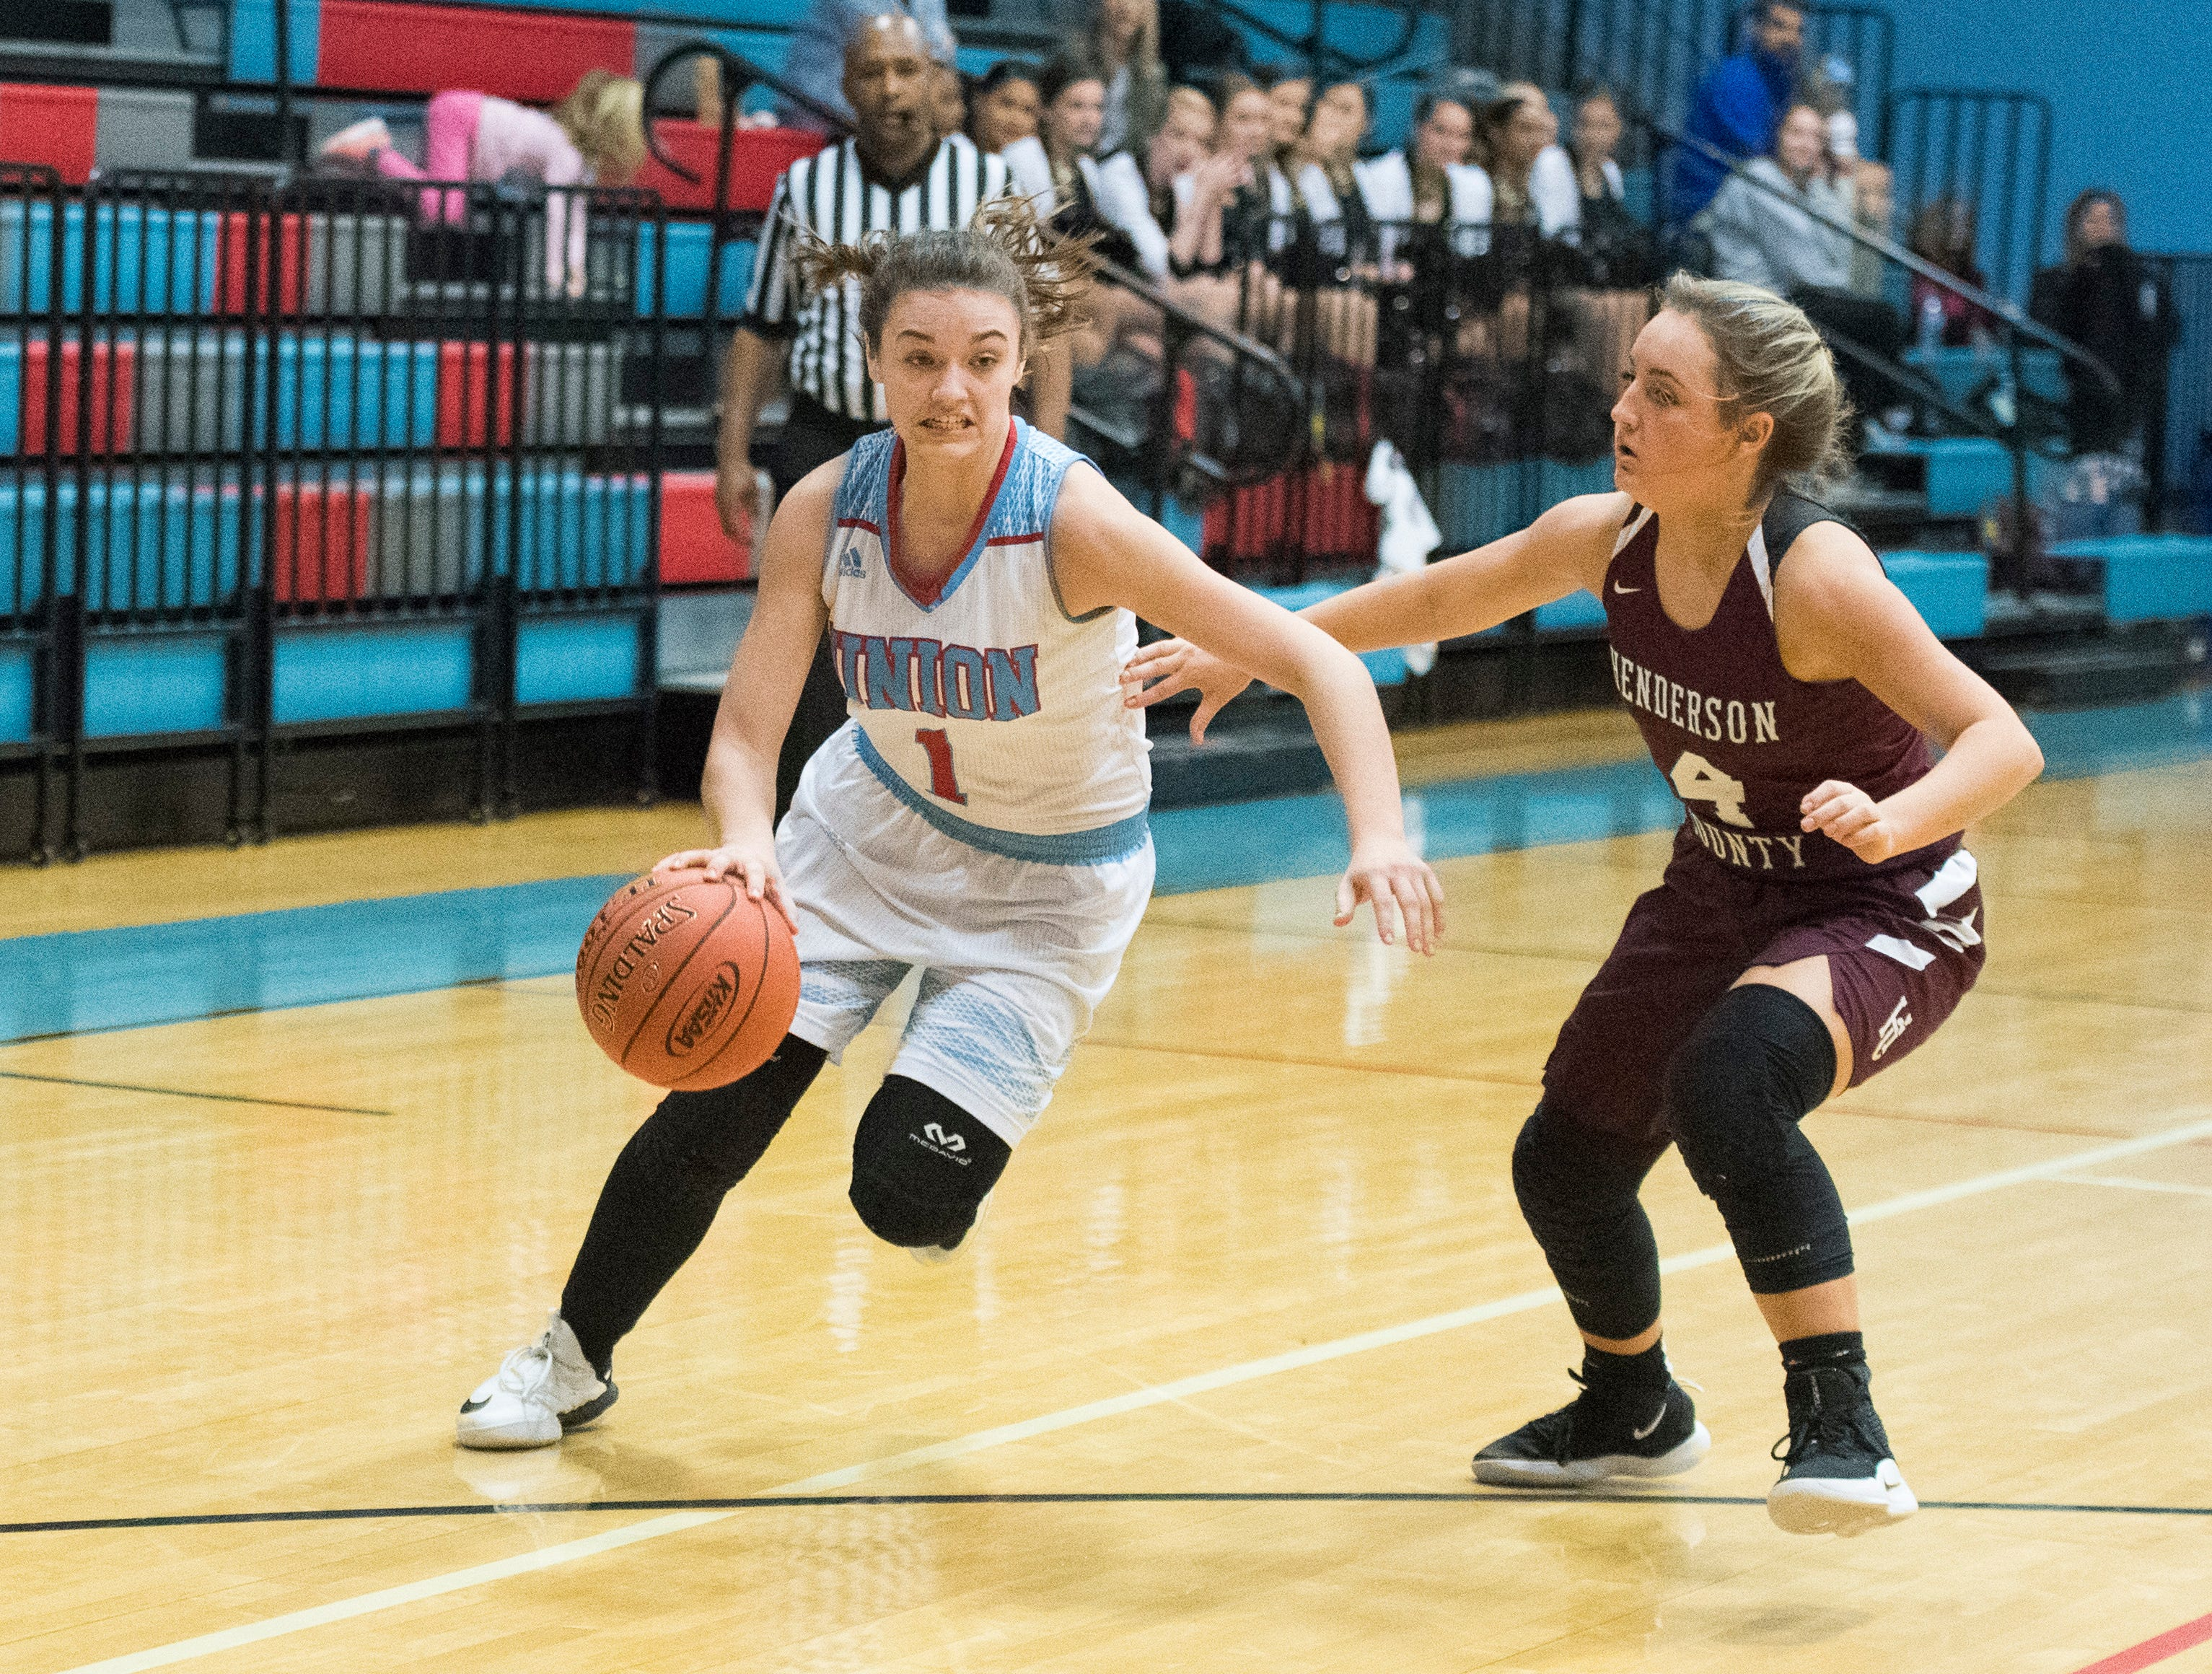 Union County's Emily Hibbs (1) drives the ball during the Henderson County vs Union County game at Union County High School Monday, Jan. 14, 2019.